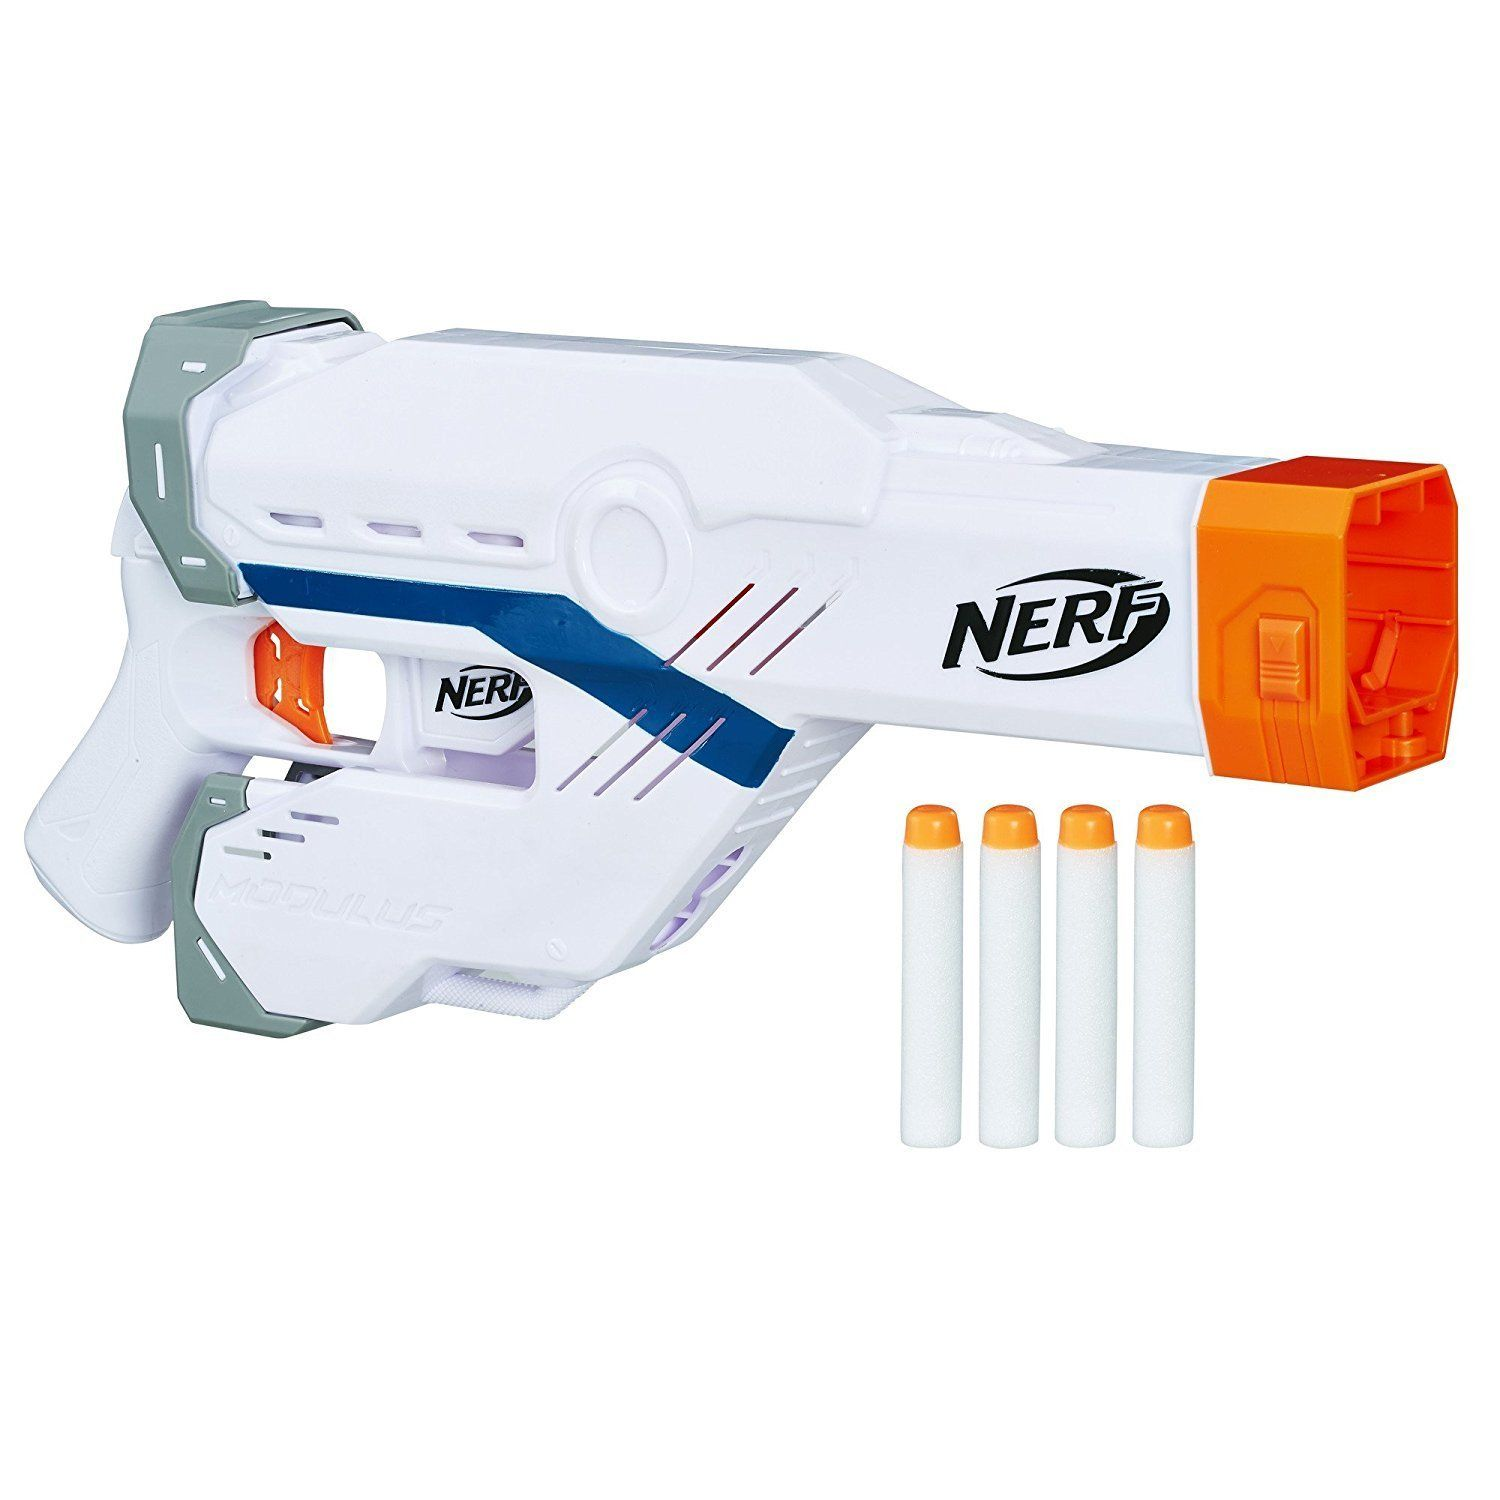 Worker modification shoulder stock replacement kit for nerf n-strike elite  toyga